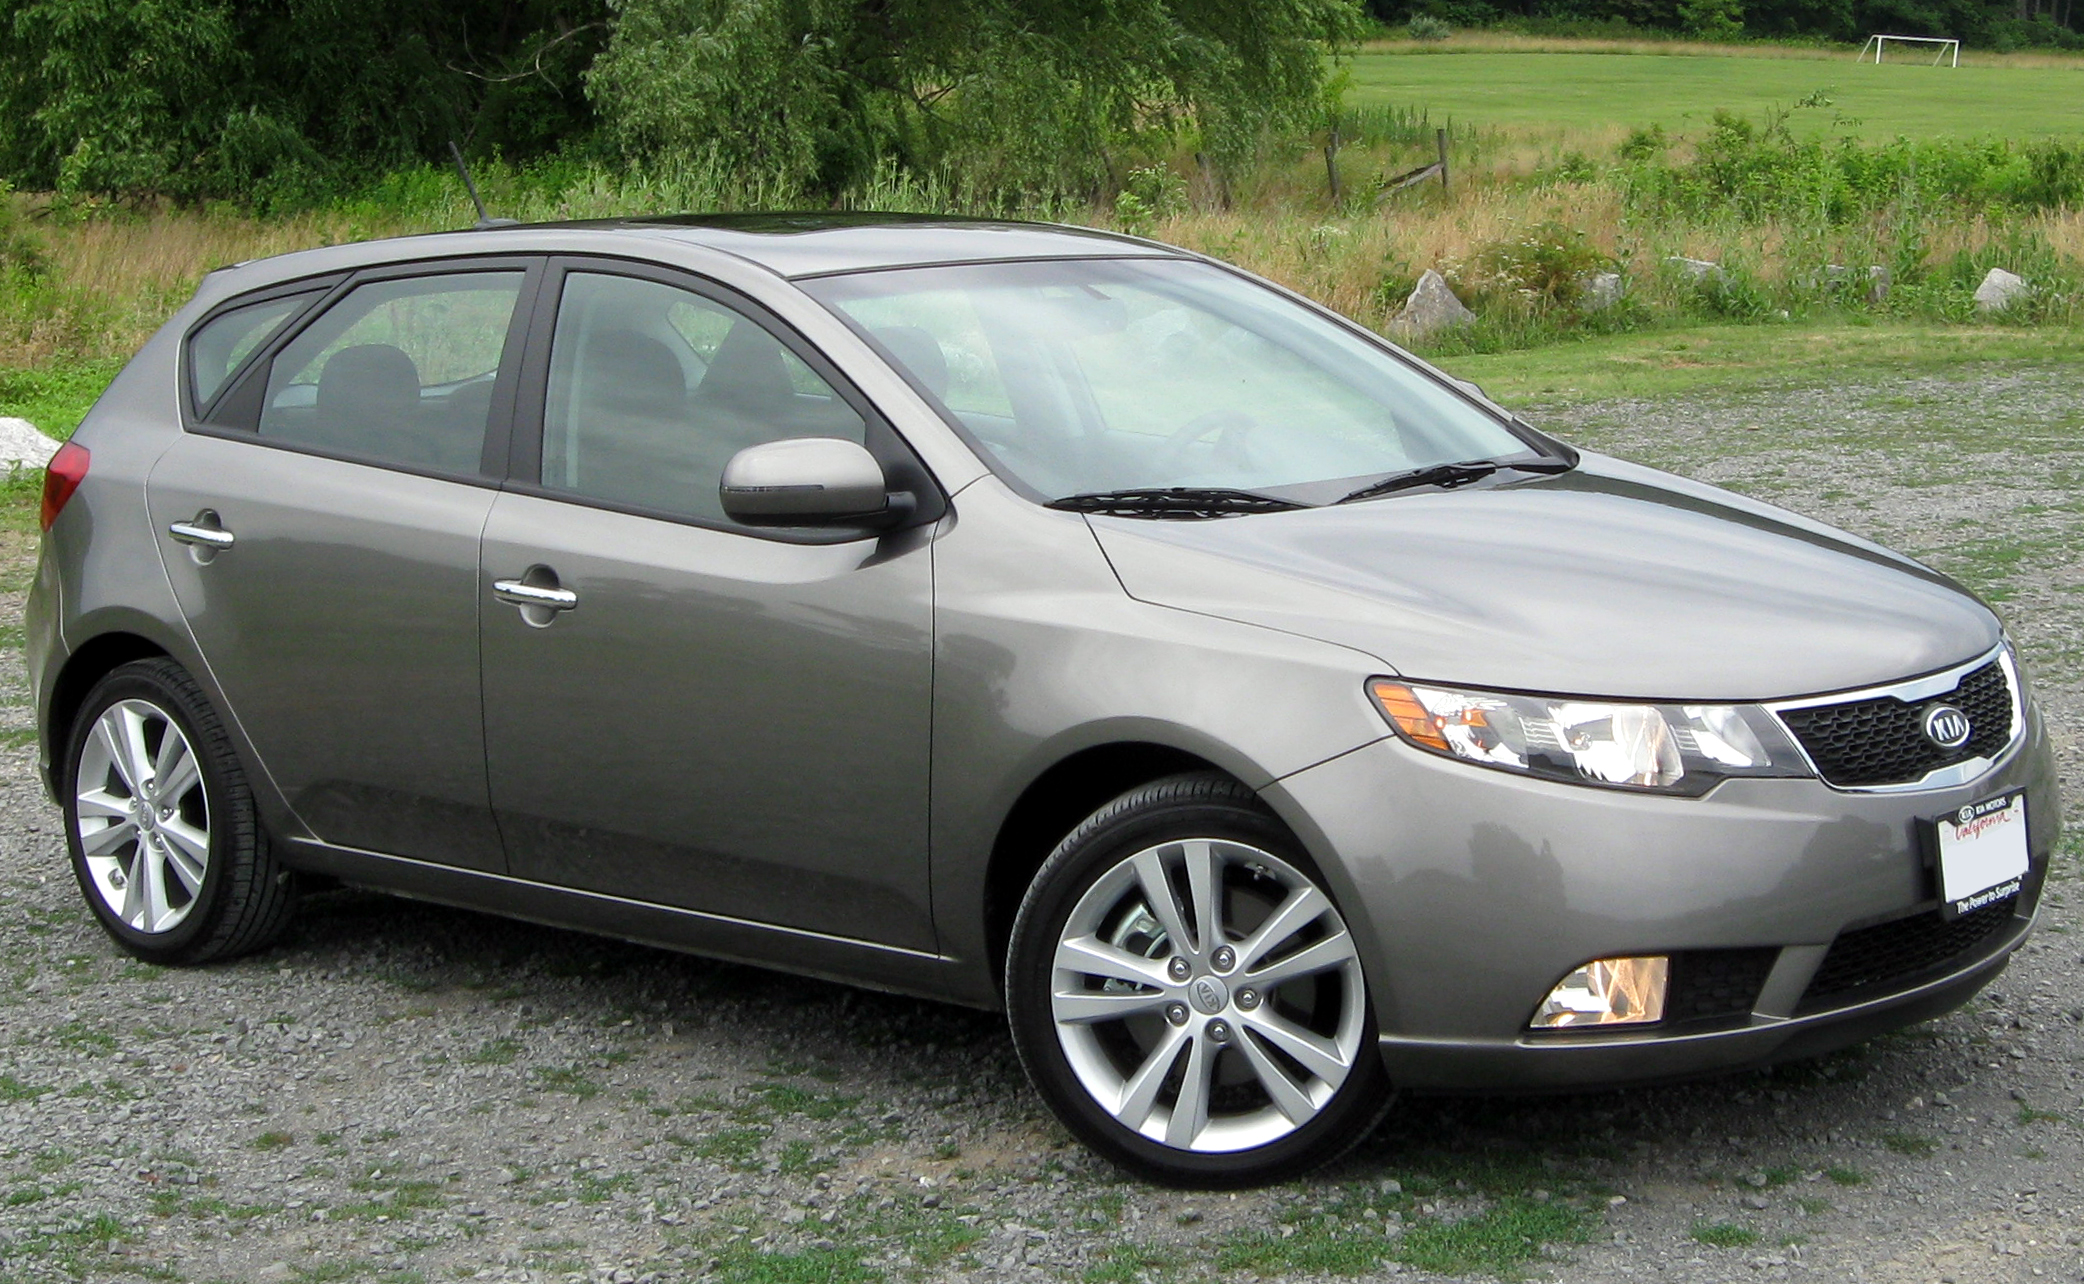 2011 kia forte hatchback pictures information and specs auto. Black Bedroom Furniture Sets. Home Design Ideas